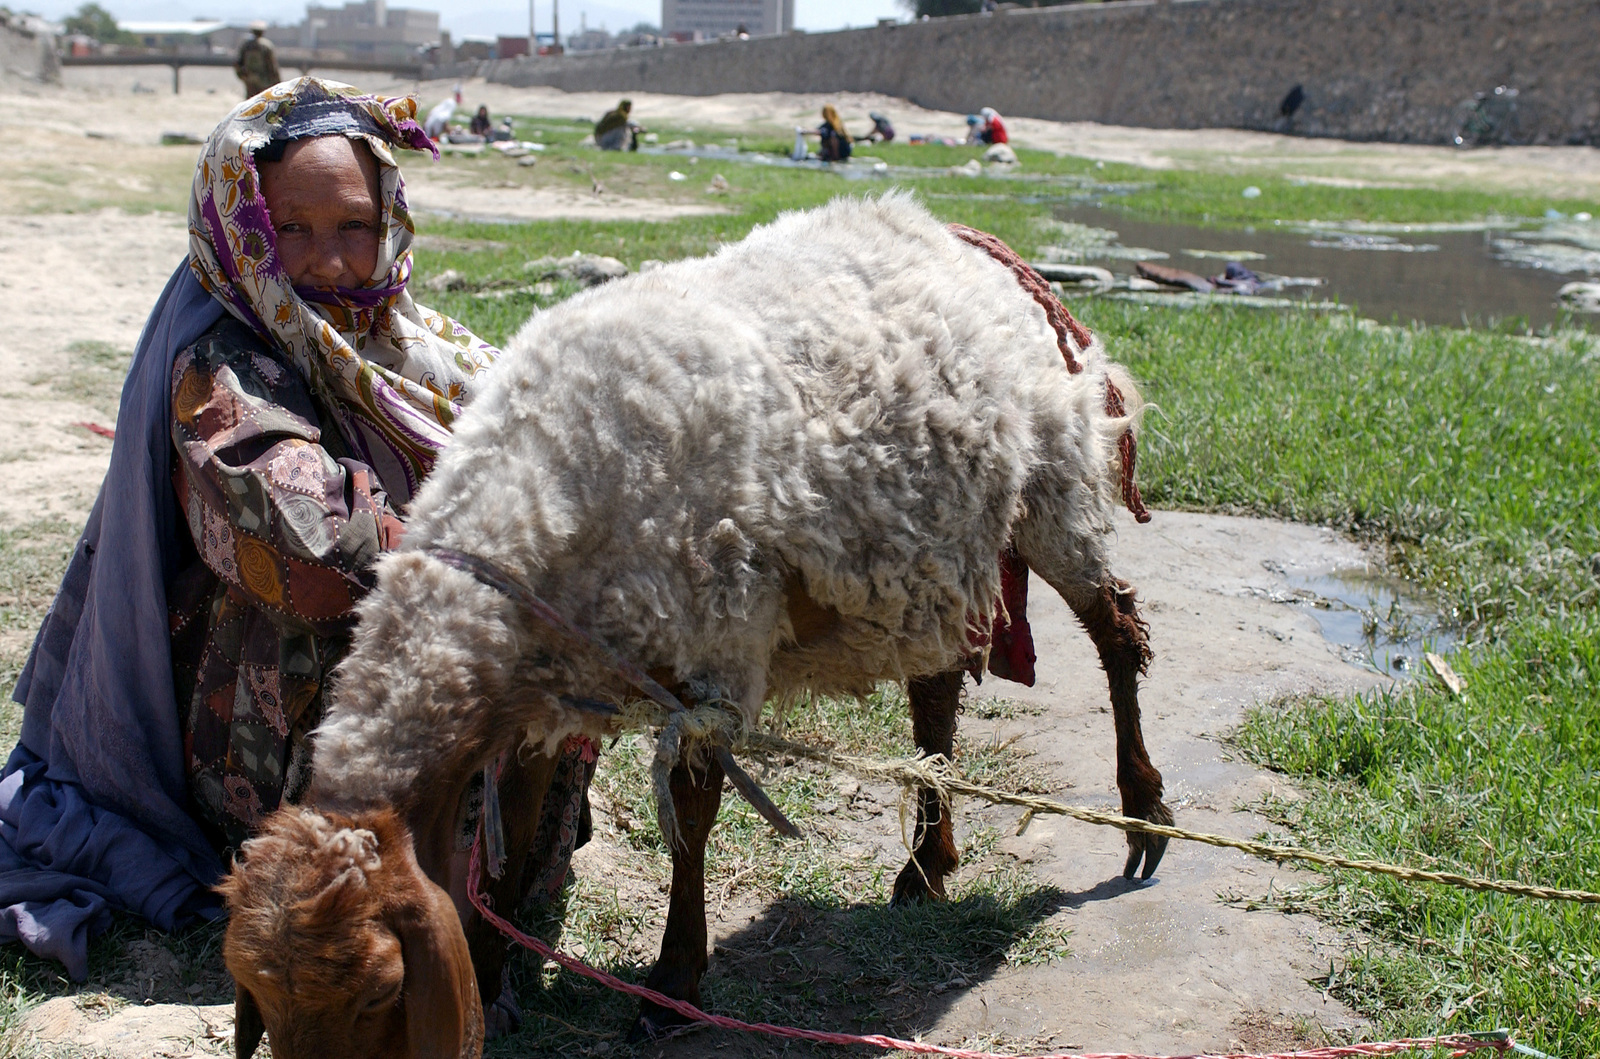 A local Afghan woman lets her goat graze while she washes clothes in